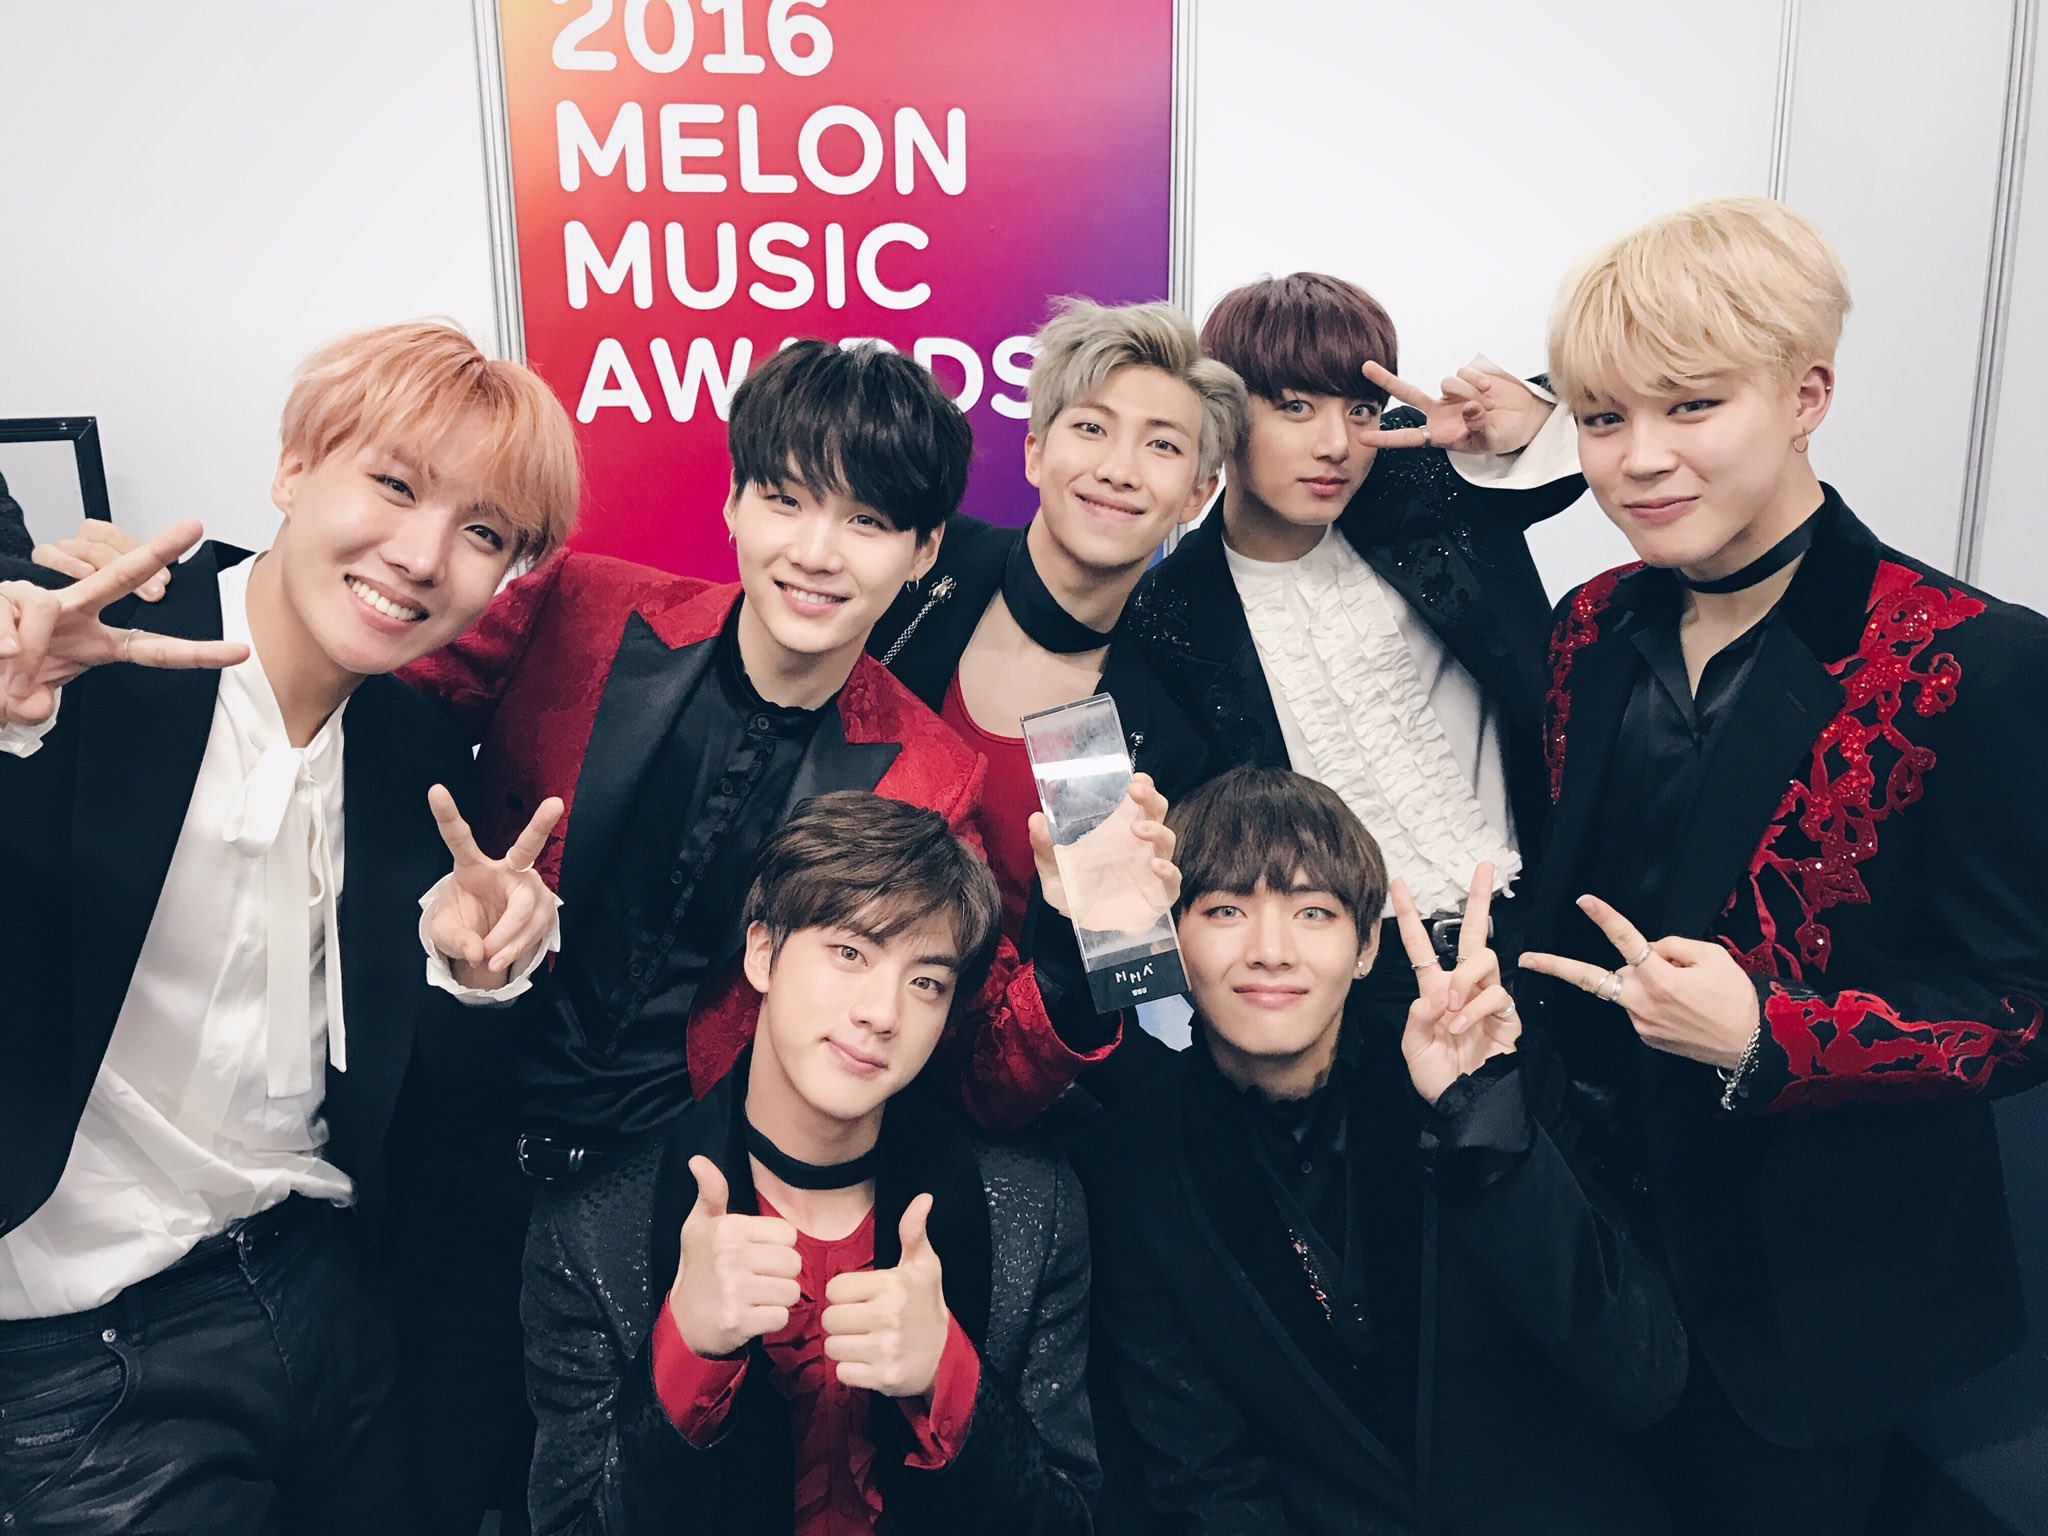 BTS Wins Best Album Of The Year At The 2016 Melon Music Awards ...